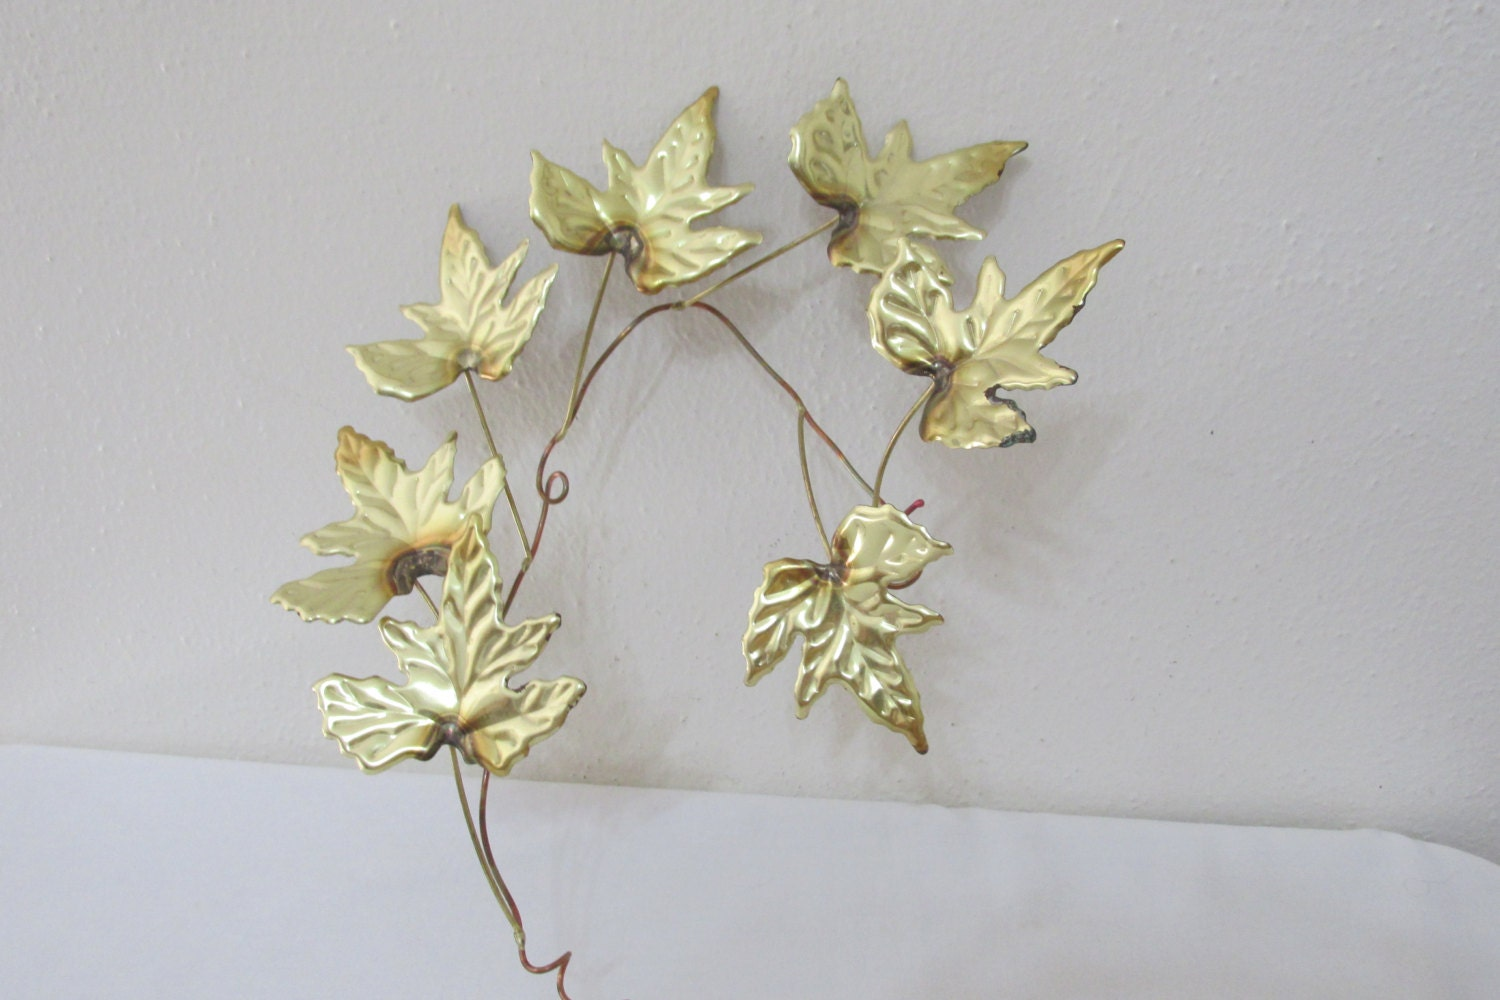 Metal leaf stem wall decor set of 8 for Leaf wall decor